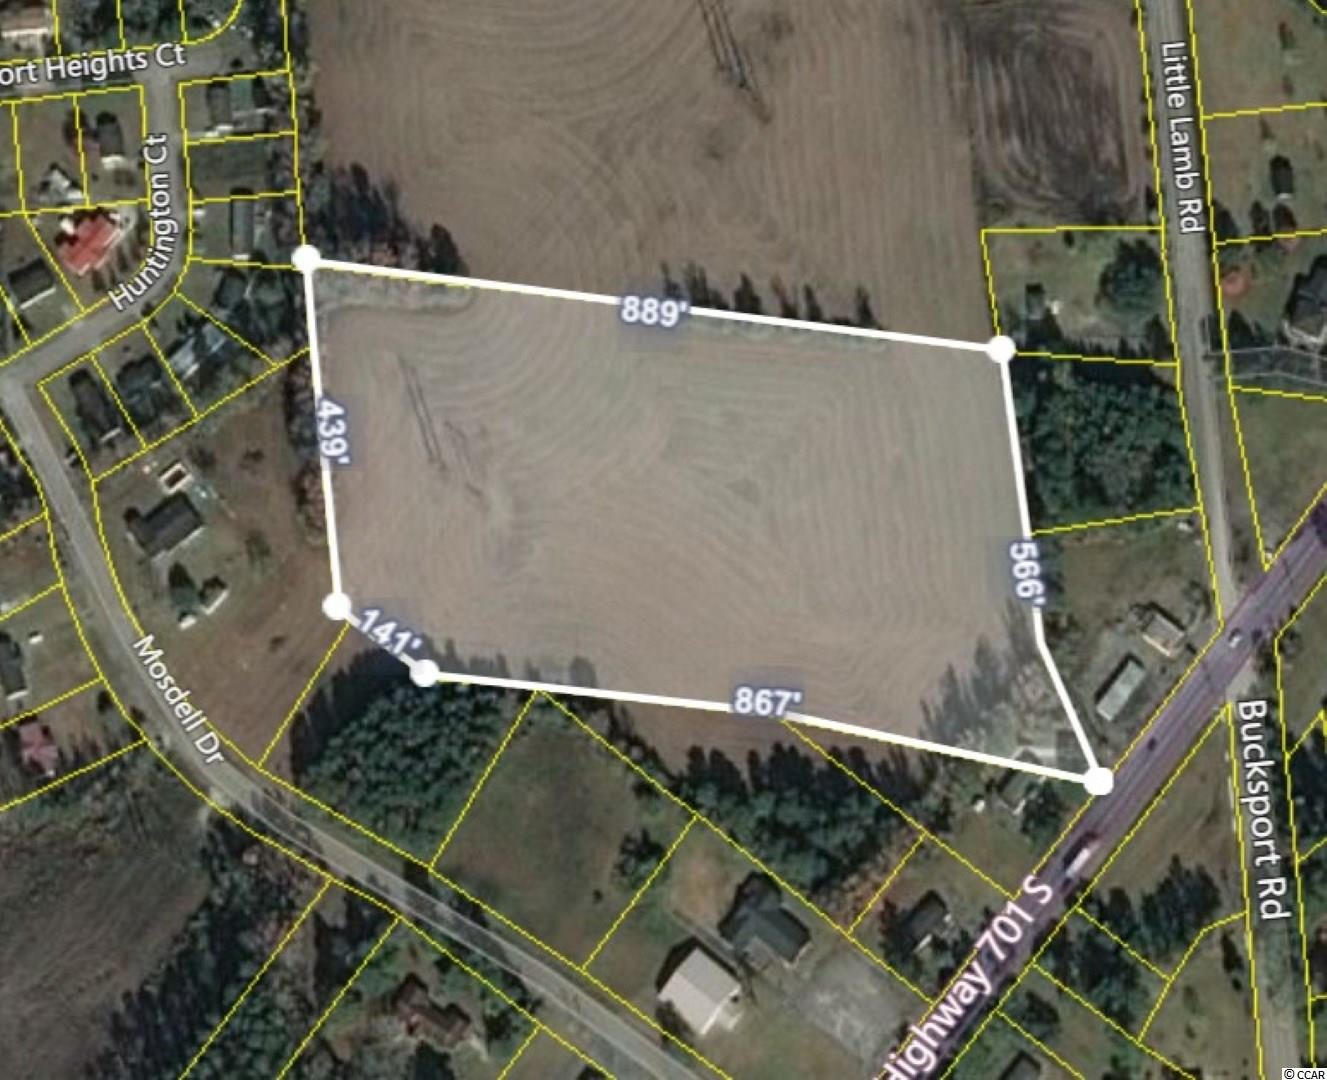 Here is an opportunity to purchase 10.5 Acres of cleared and ready to develop land in an area that is fast becoming the next big thing. Located with access from Highway 701 and across the street from Bucksport Rd which leads to the riverfront and Bucksport Marina, this property is zoned to generate nearly any type of revenue generating business venture. This a don't wait and don't hesitate situation.